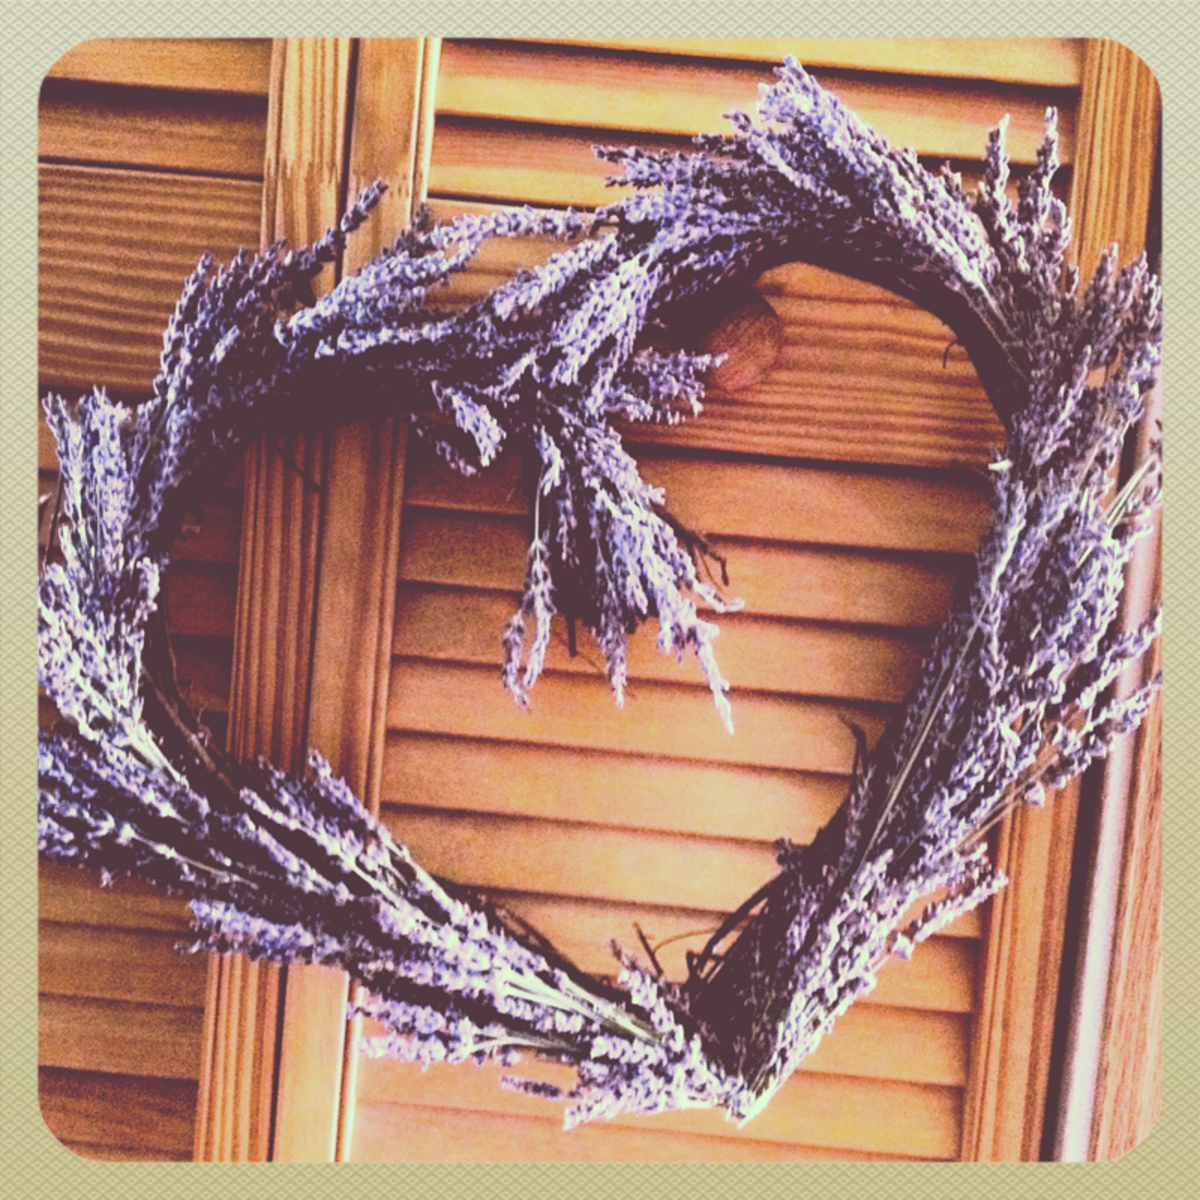 How to Make a Lavender Heart Wreath